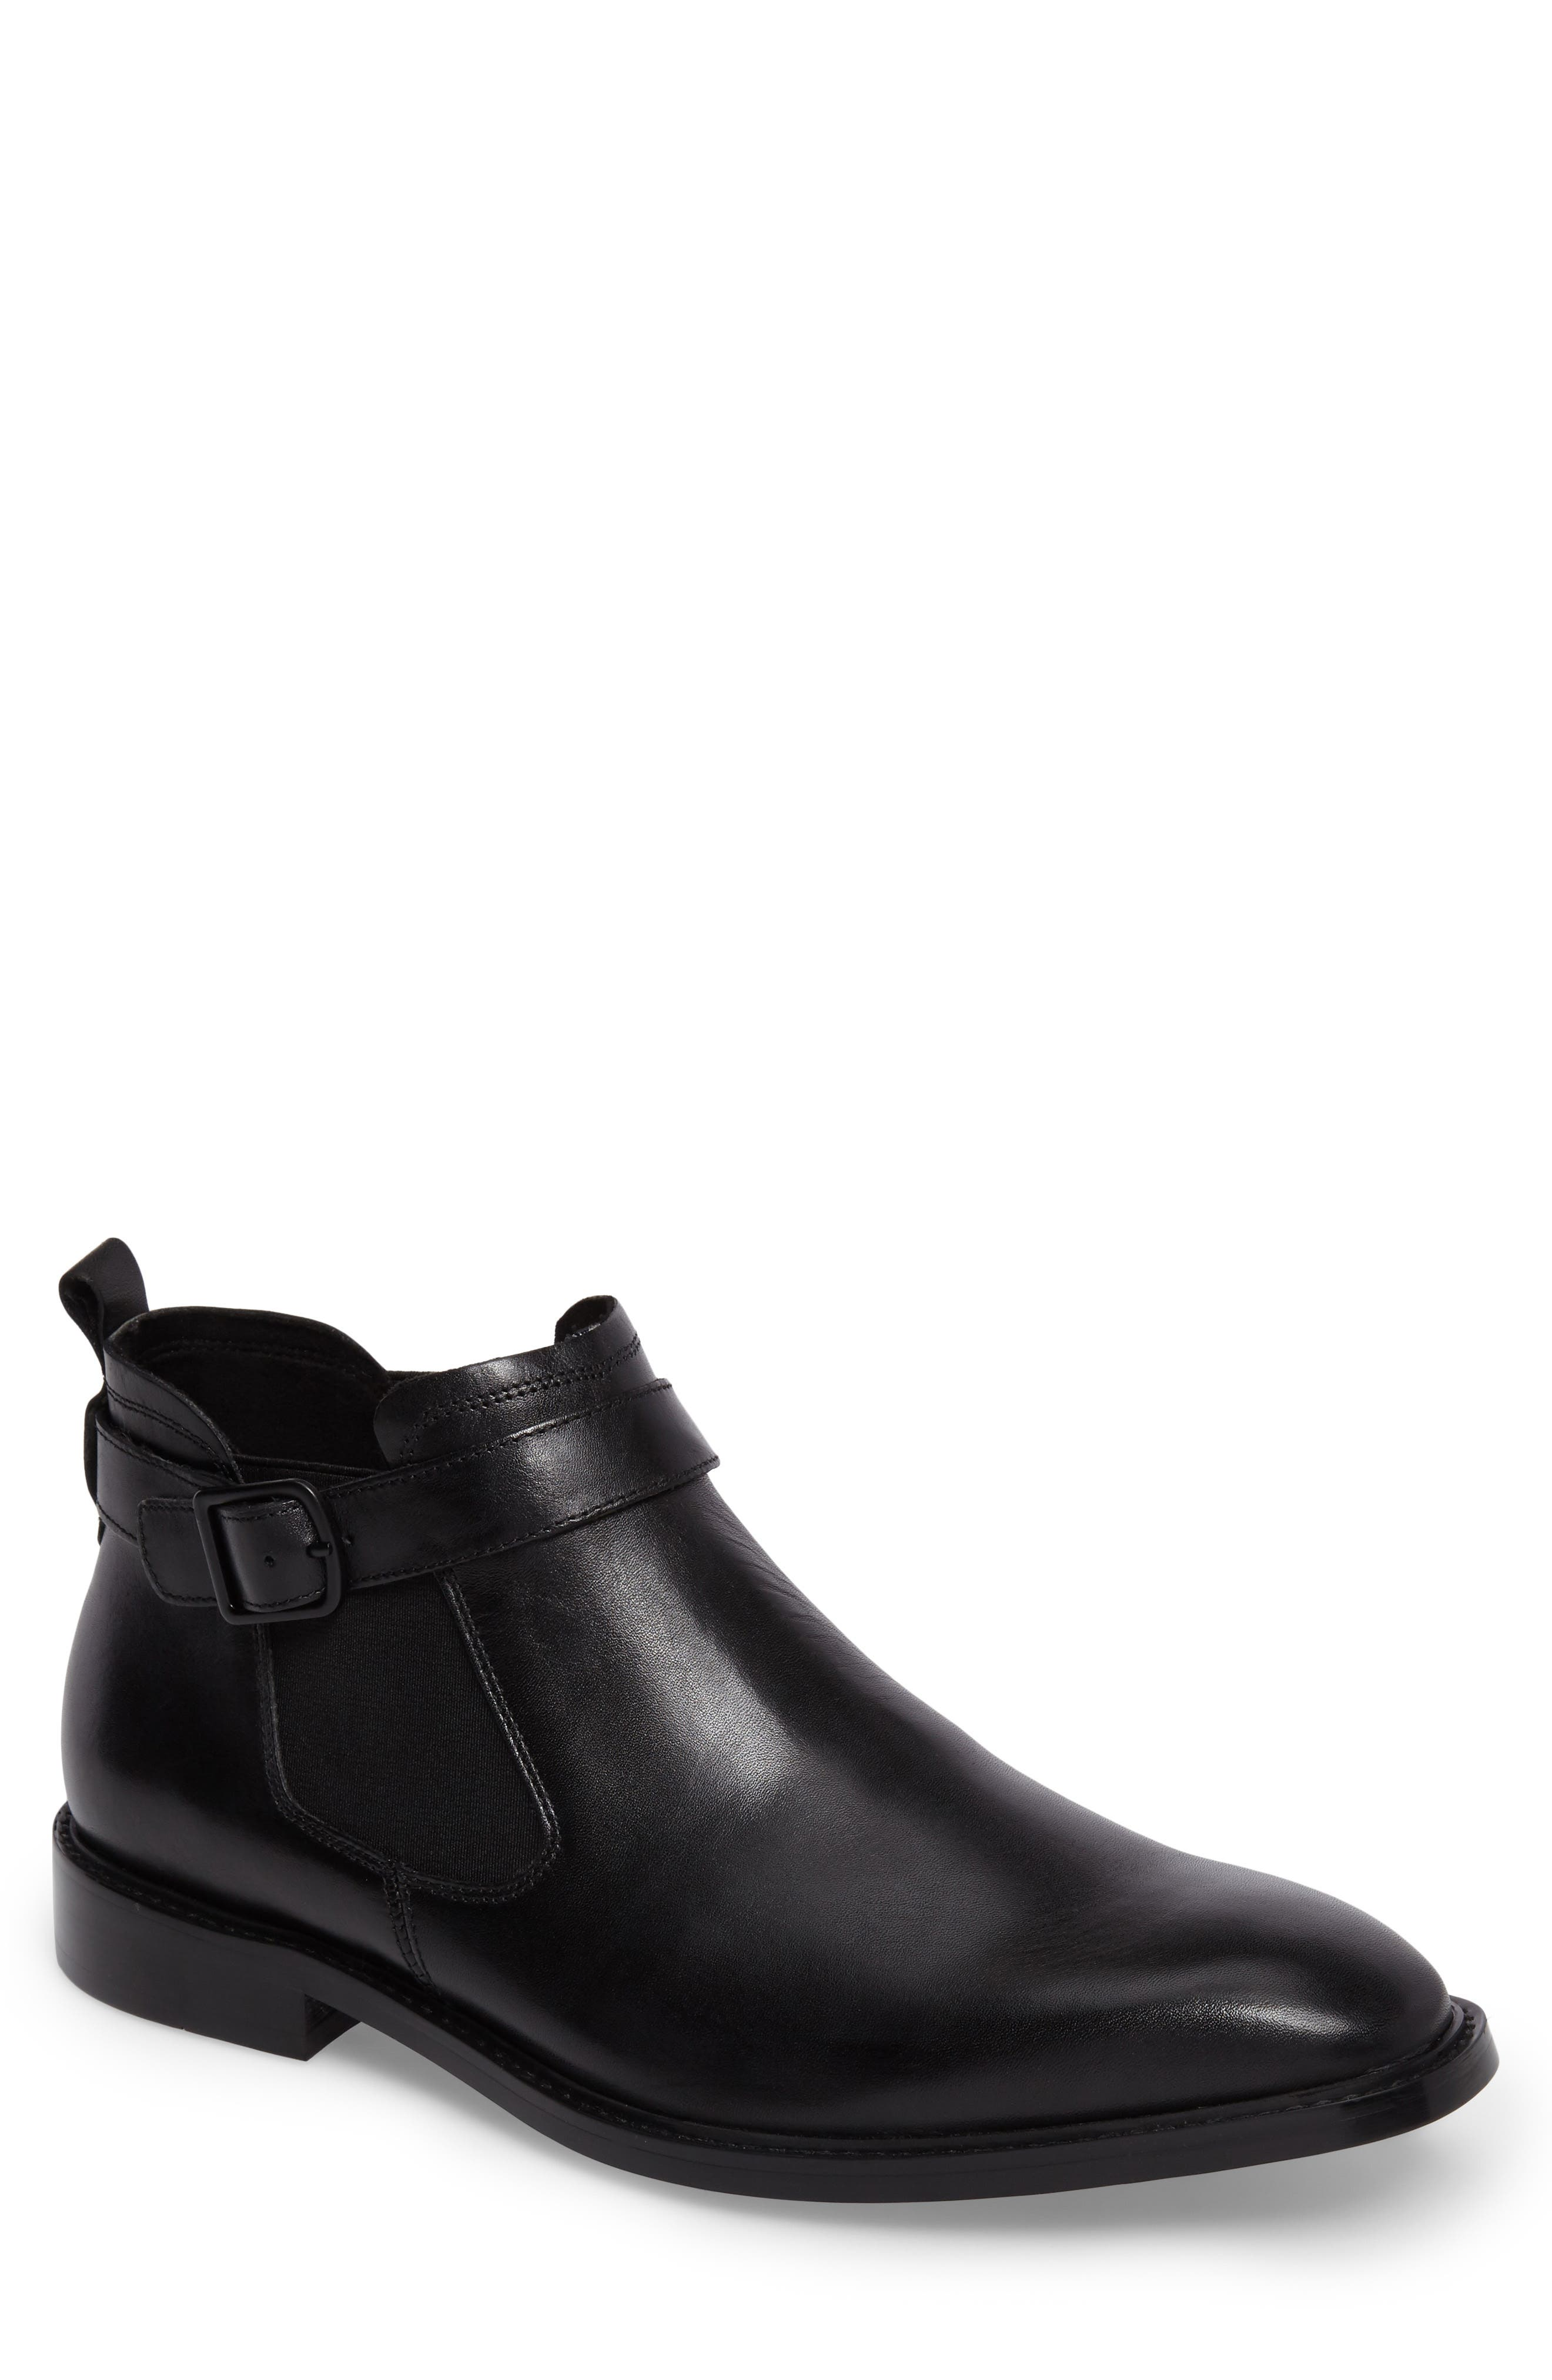 'Sum-Times' Chelsea Boot,                             Main thumbnail 1, color,                             Black Leather